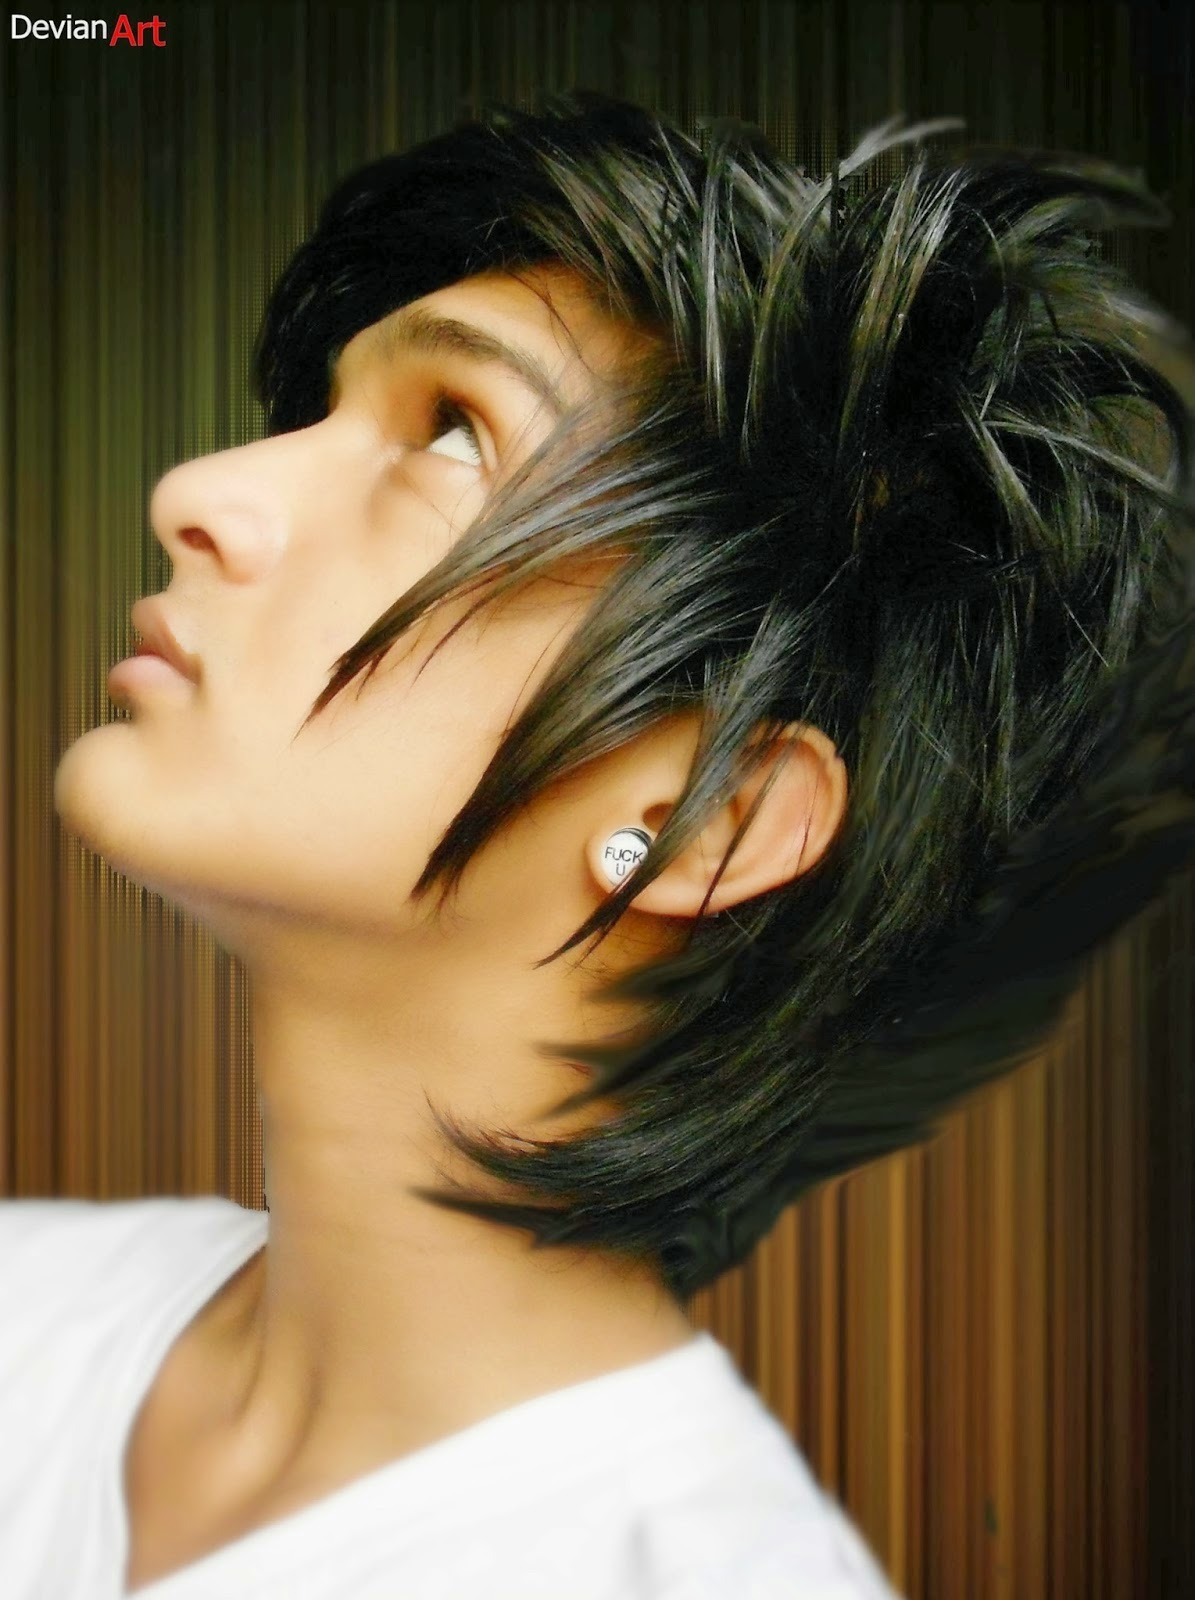 Marvelous Boys Hairstyles 2015 New Haircuts For Men And Young Boys Styles4Me Hairstyle Inspiration Daily Dogsangcom